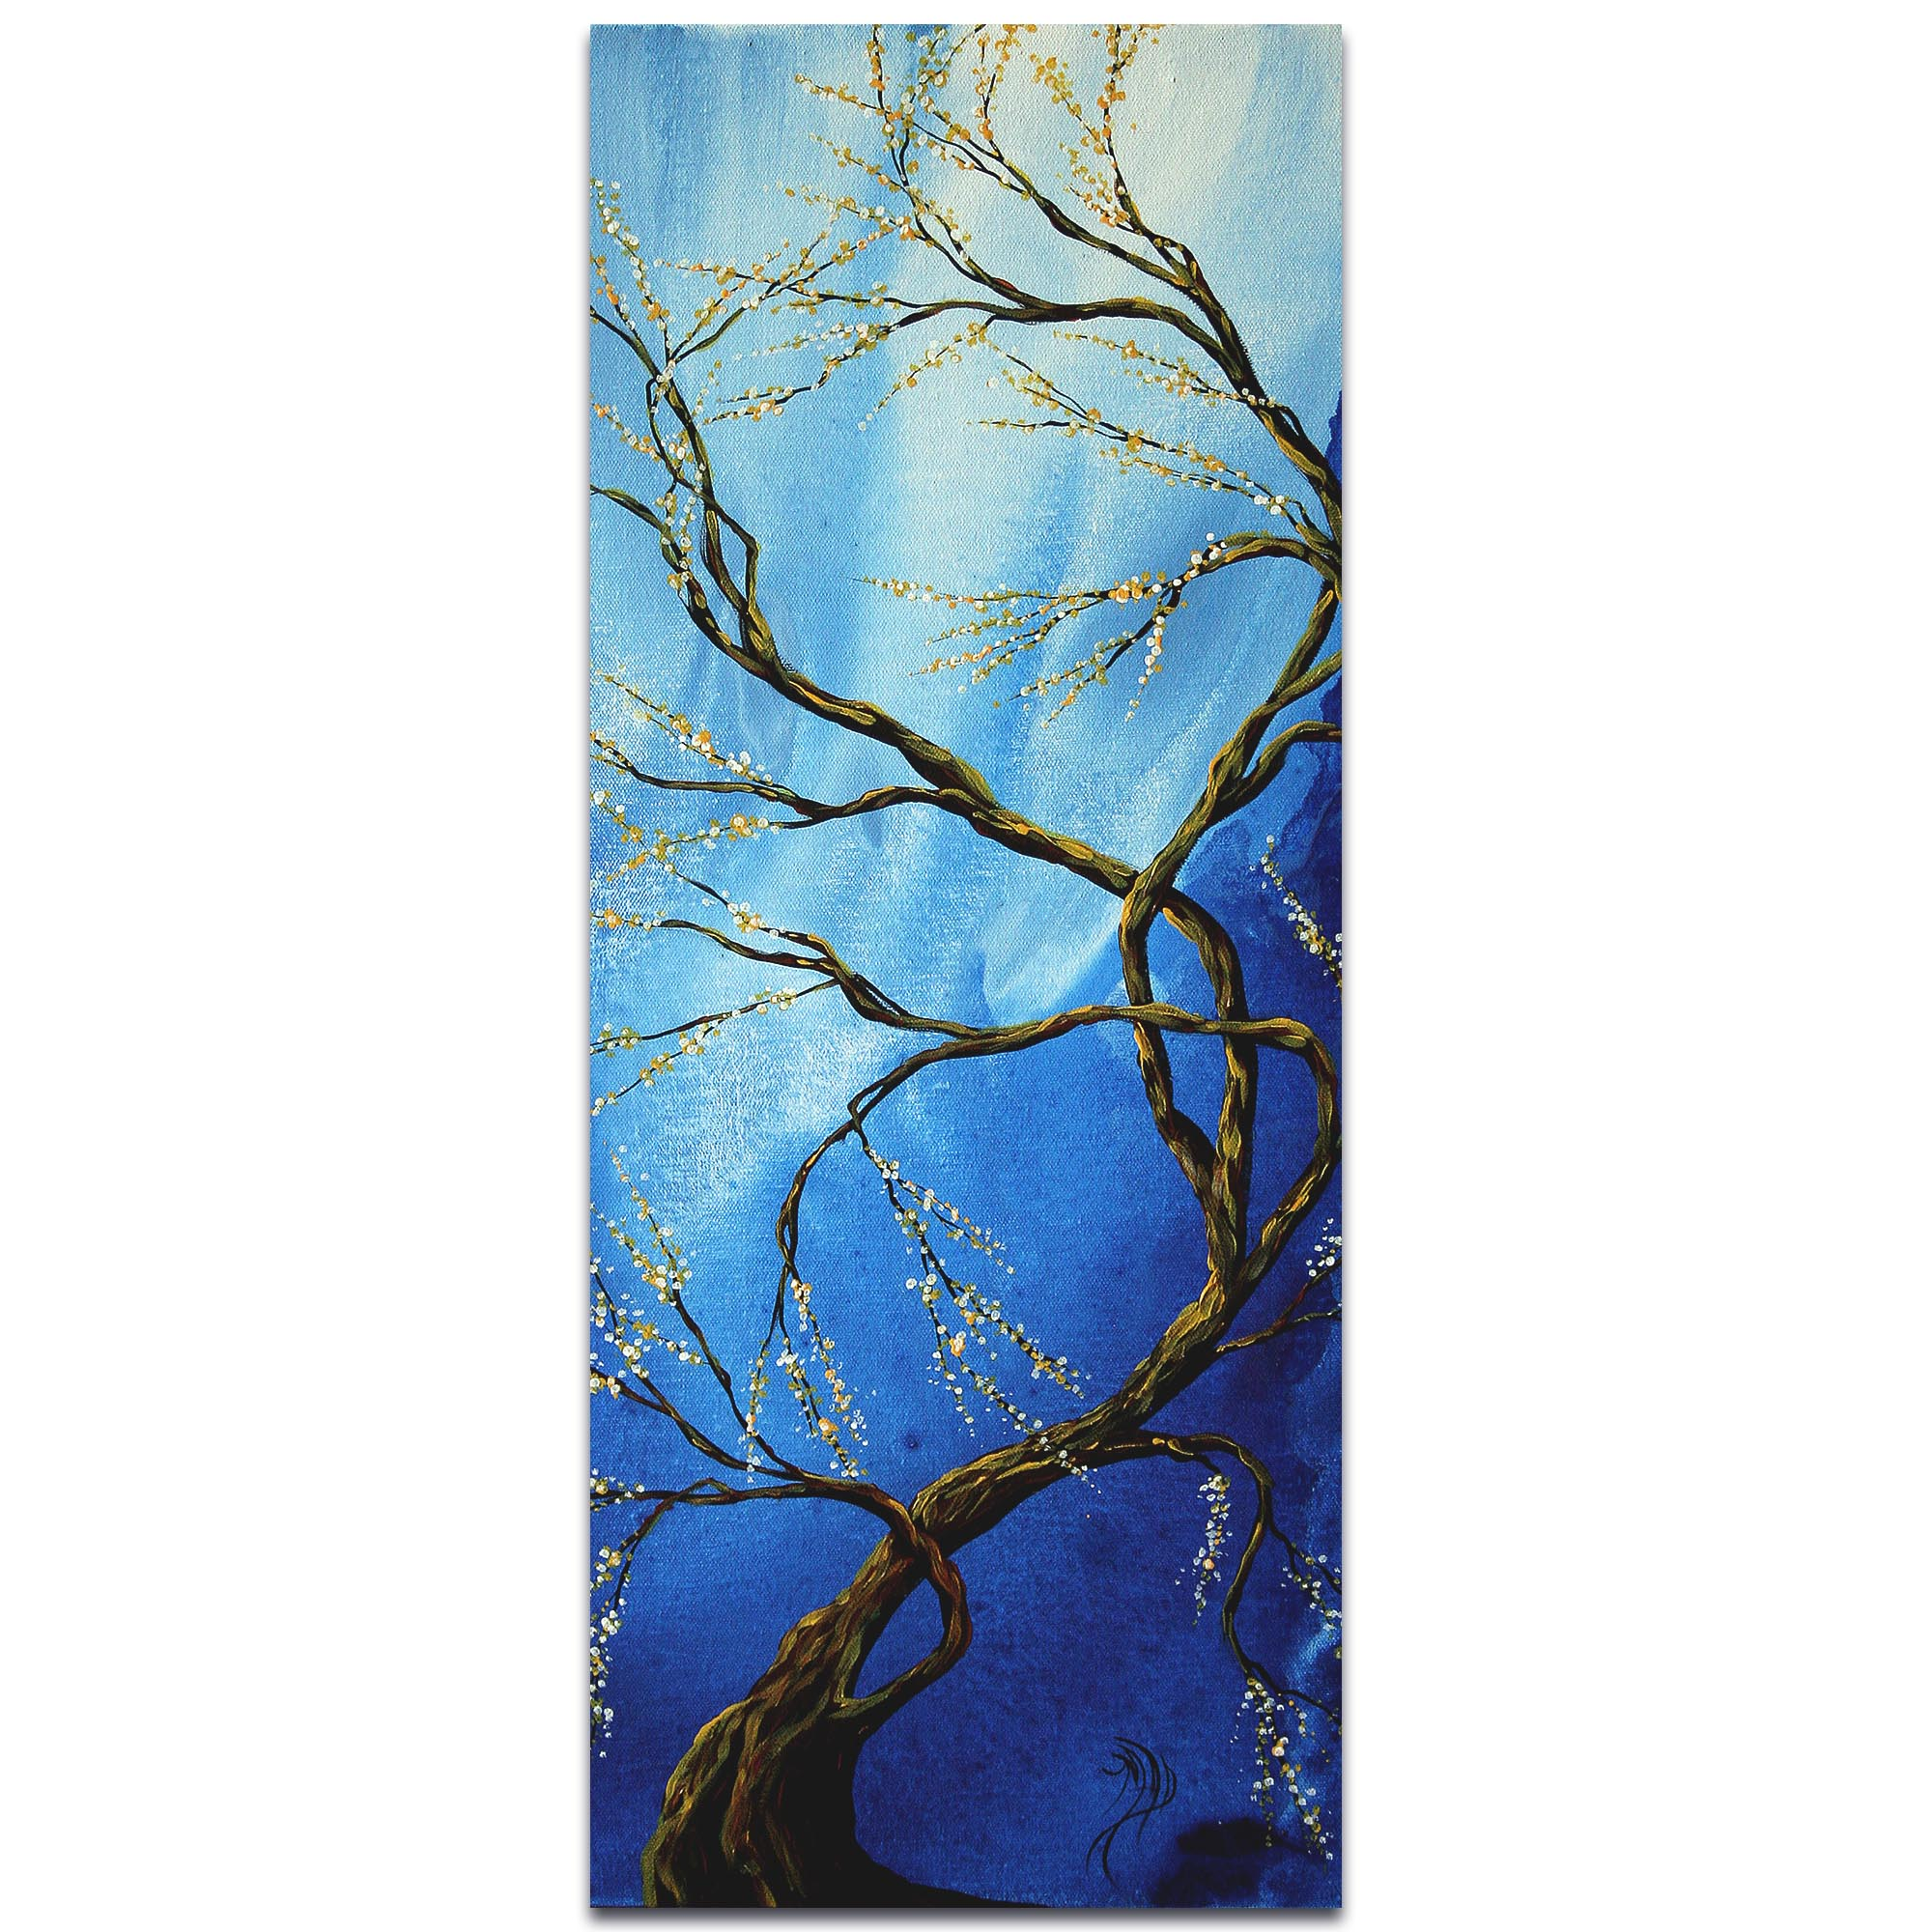 Landscape Painting 'Infinite Heights' - Abstract Tree Art on Metal or Acrylic